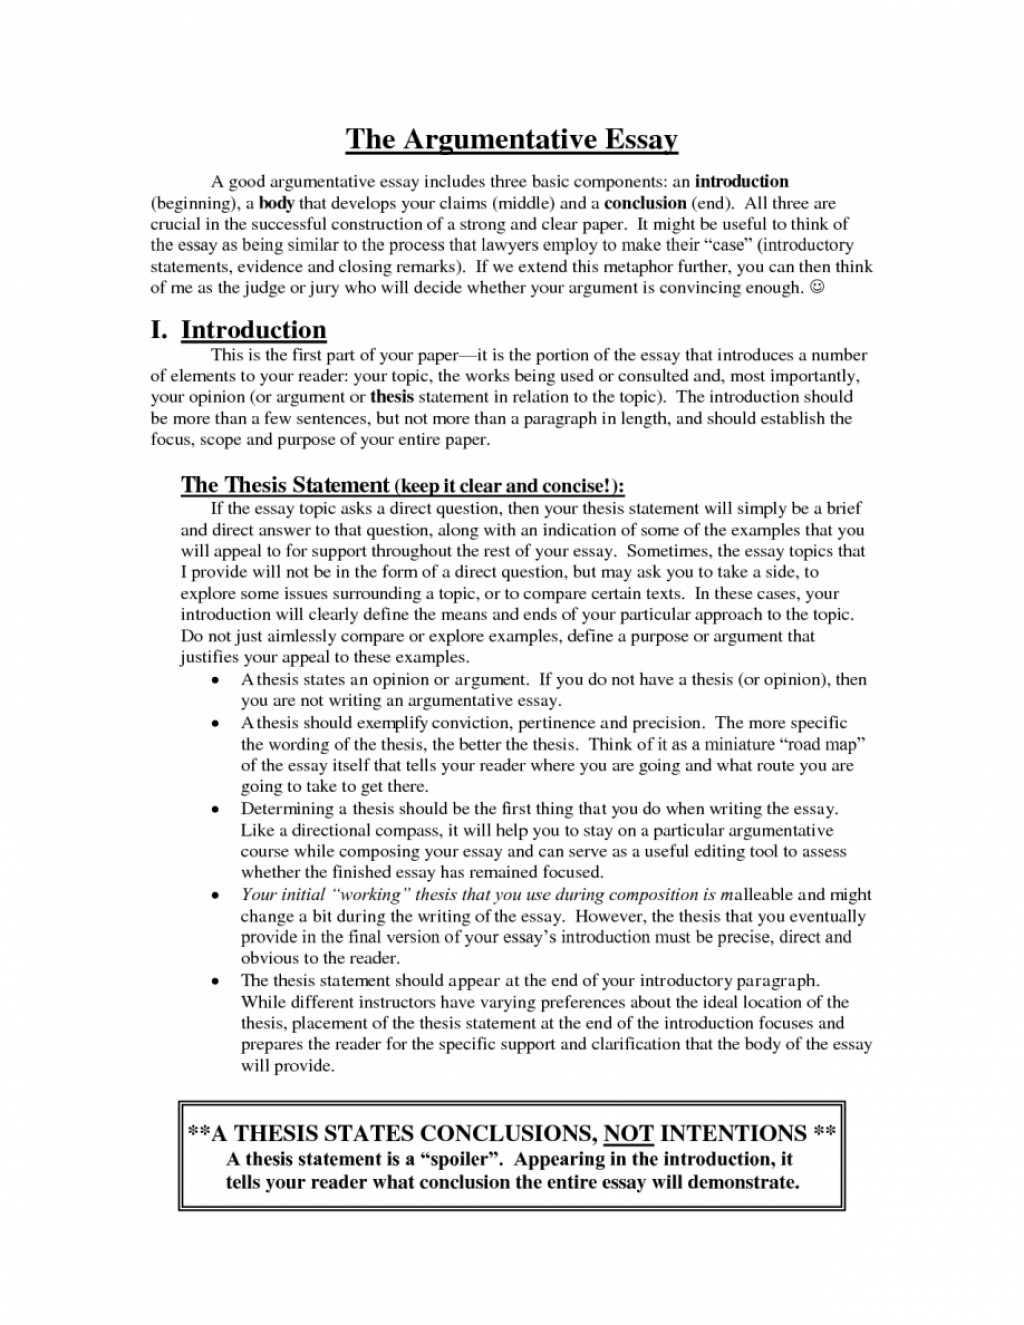 007 Argumentative Essay Hook Examples Example Good Introduction For Professional Resume Health And Fitness Personal High School Sopics Middle Pdf College Conclusion Incredible Large